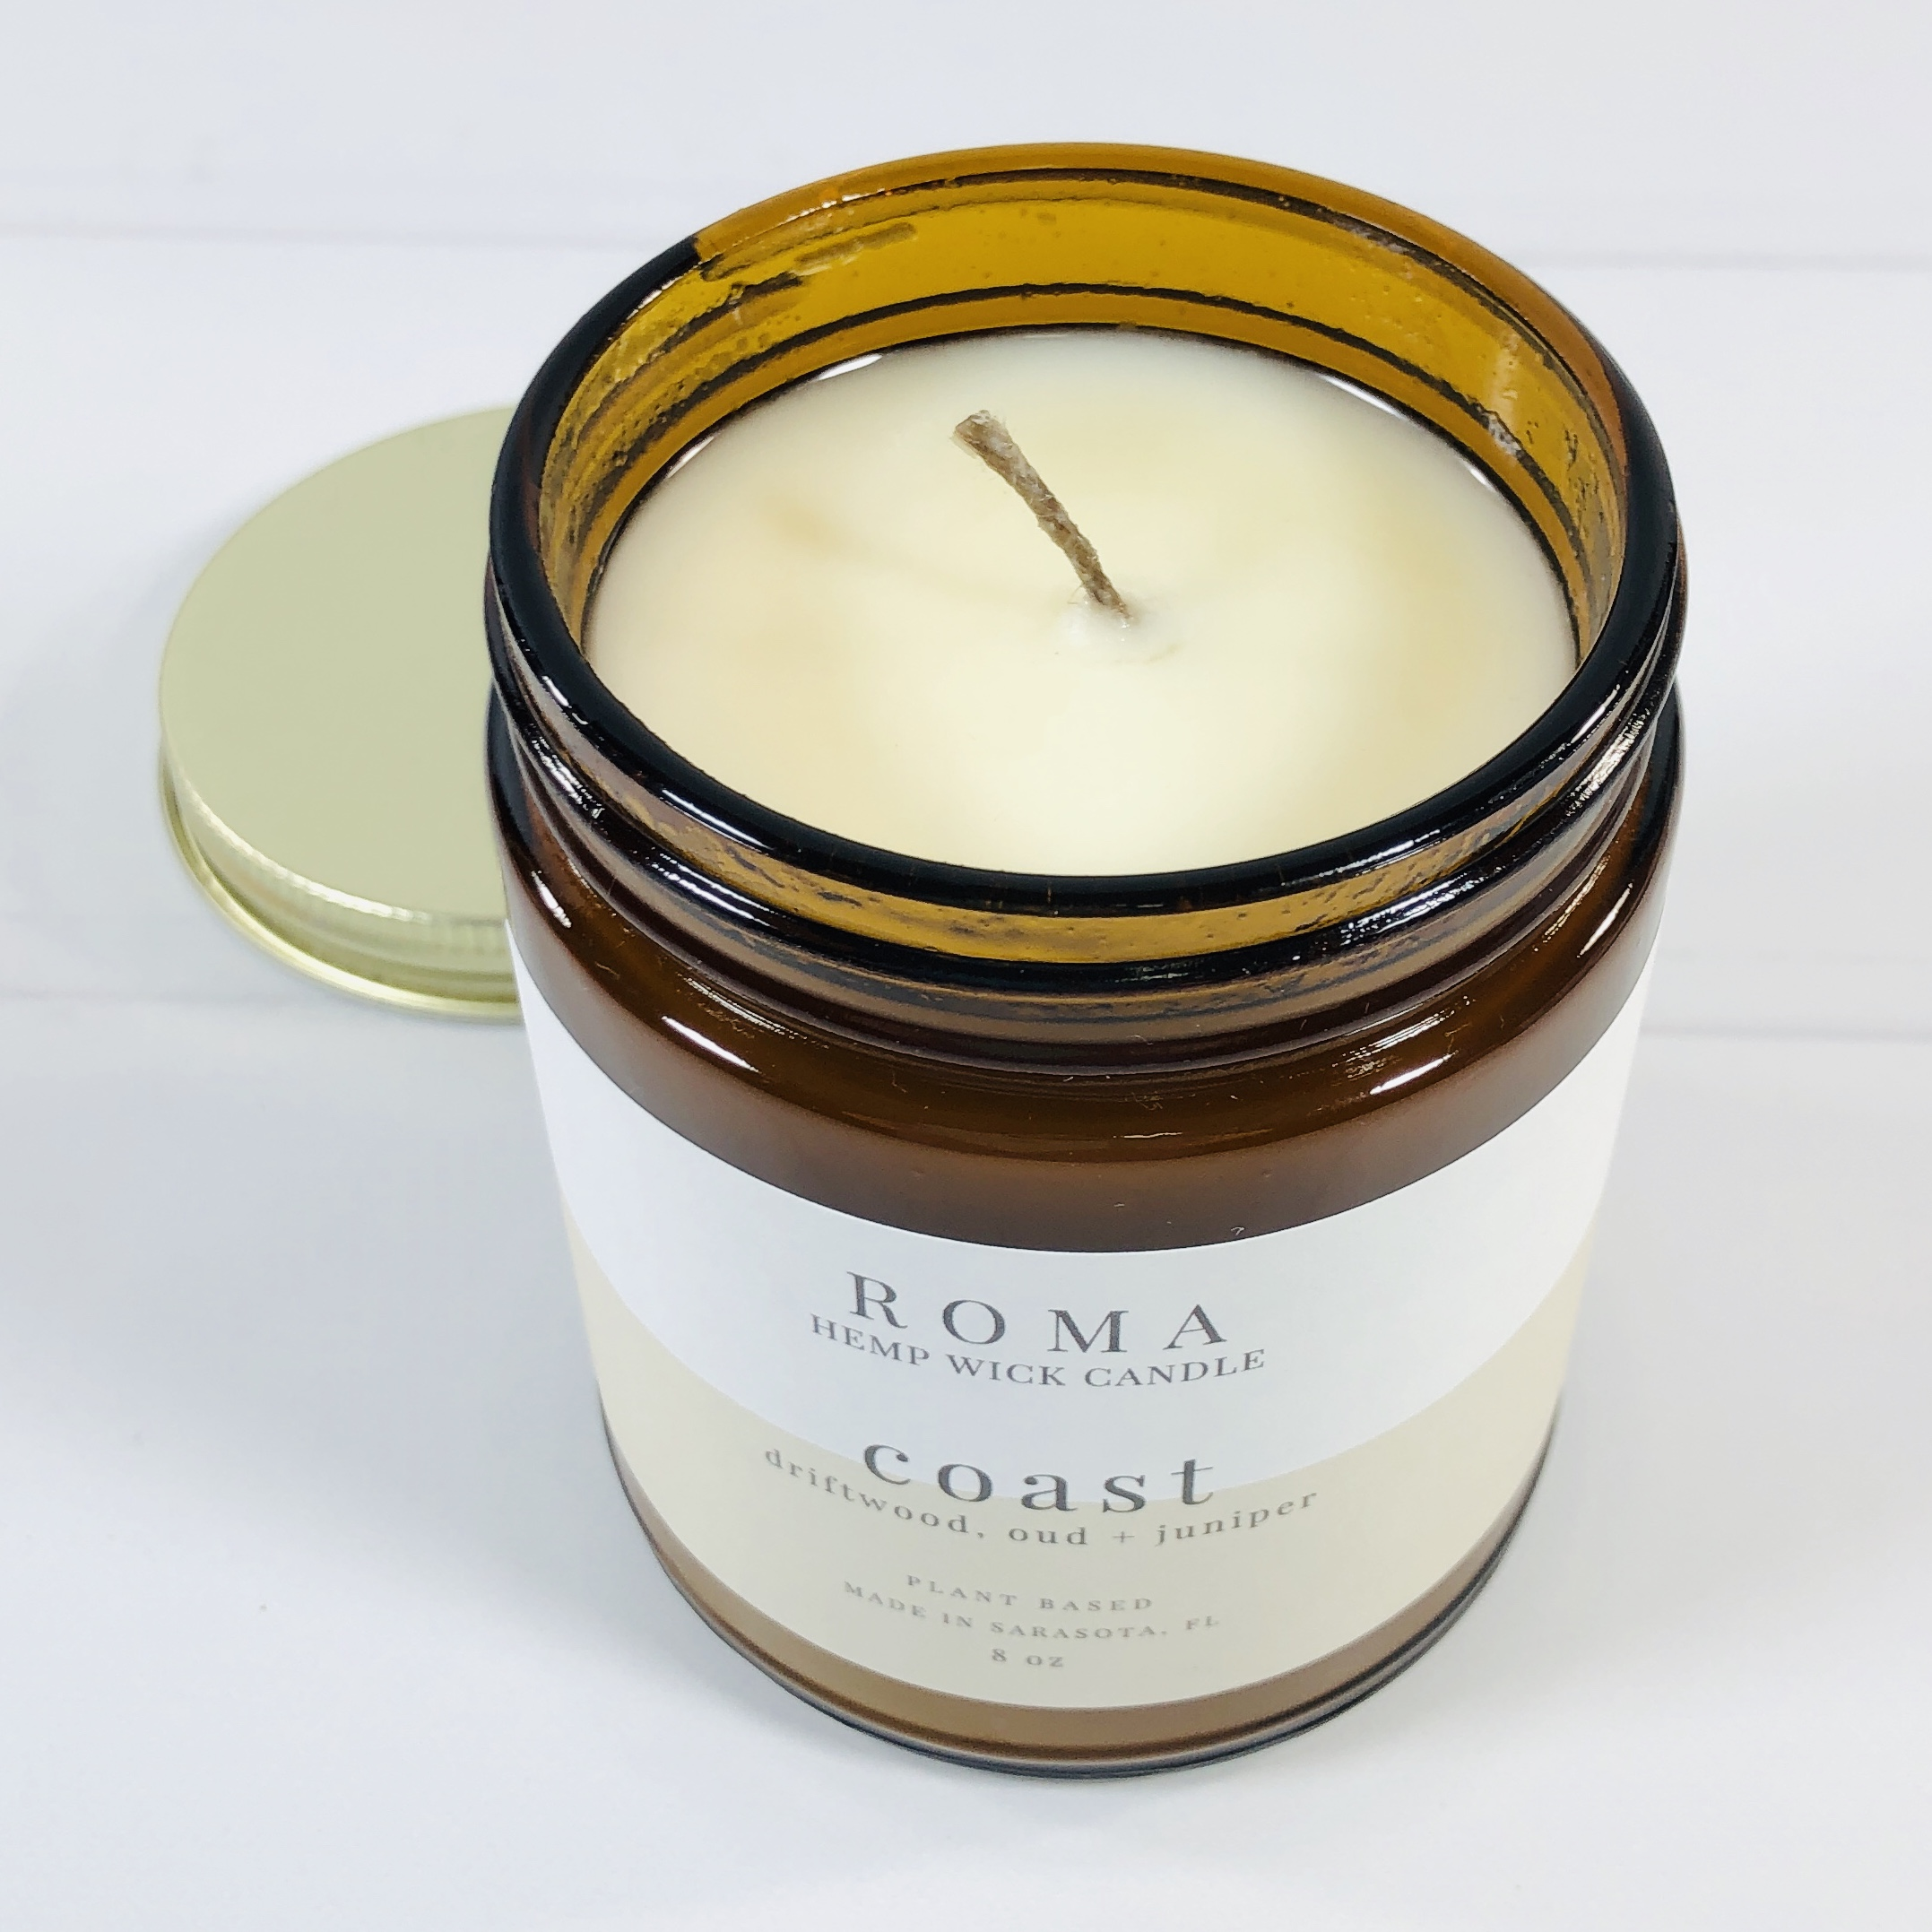 Garden scent Roma Soy Wax Candle Handmade Candle  Glass Jar Candle Lemongrass Basil Rosemary Tomato Leaf